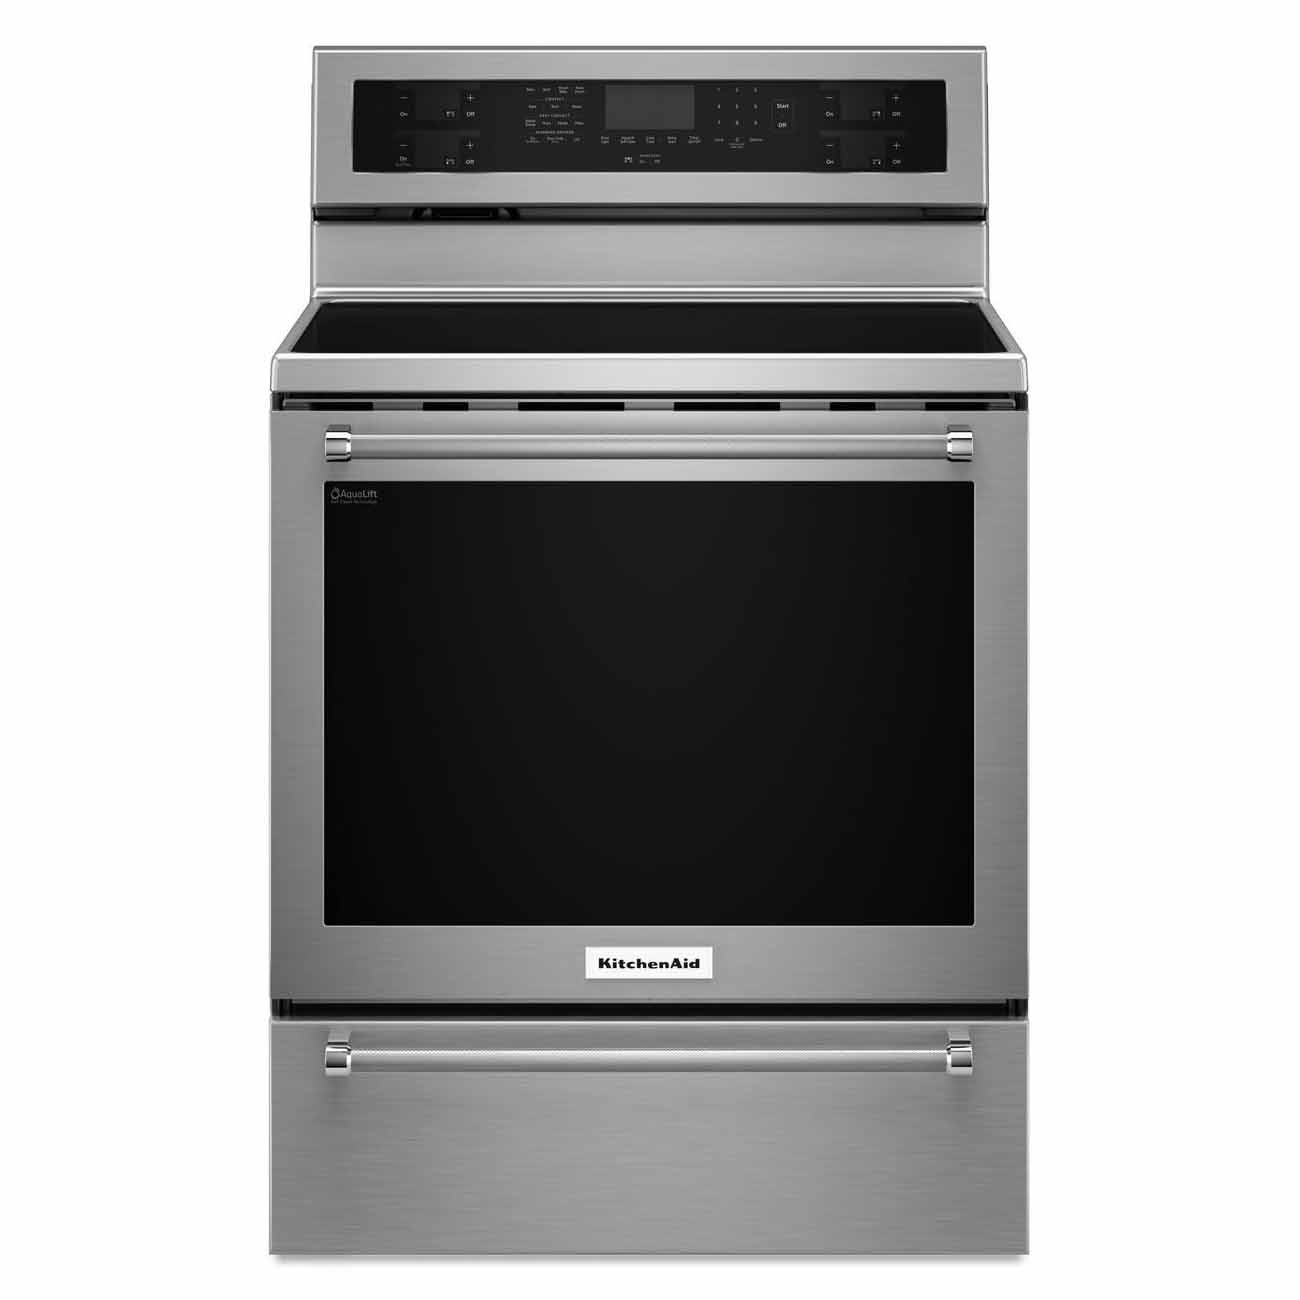 KitchenAid 30 Inch 5 Element Electric Convection Range With Warming Drawer  #KFES530ESS Review